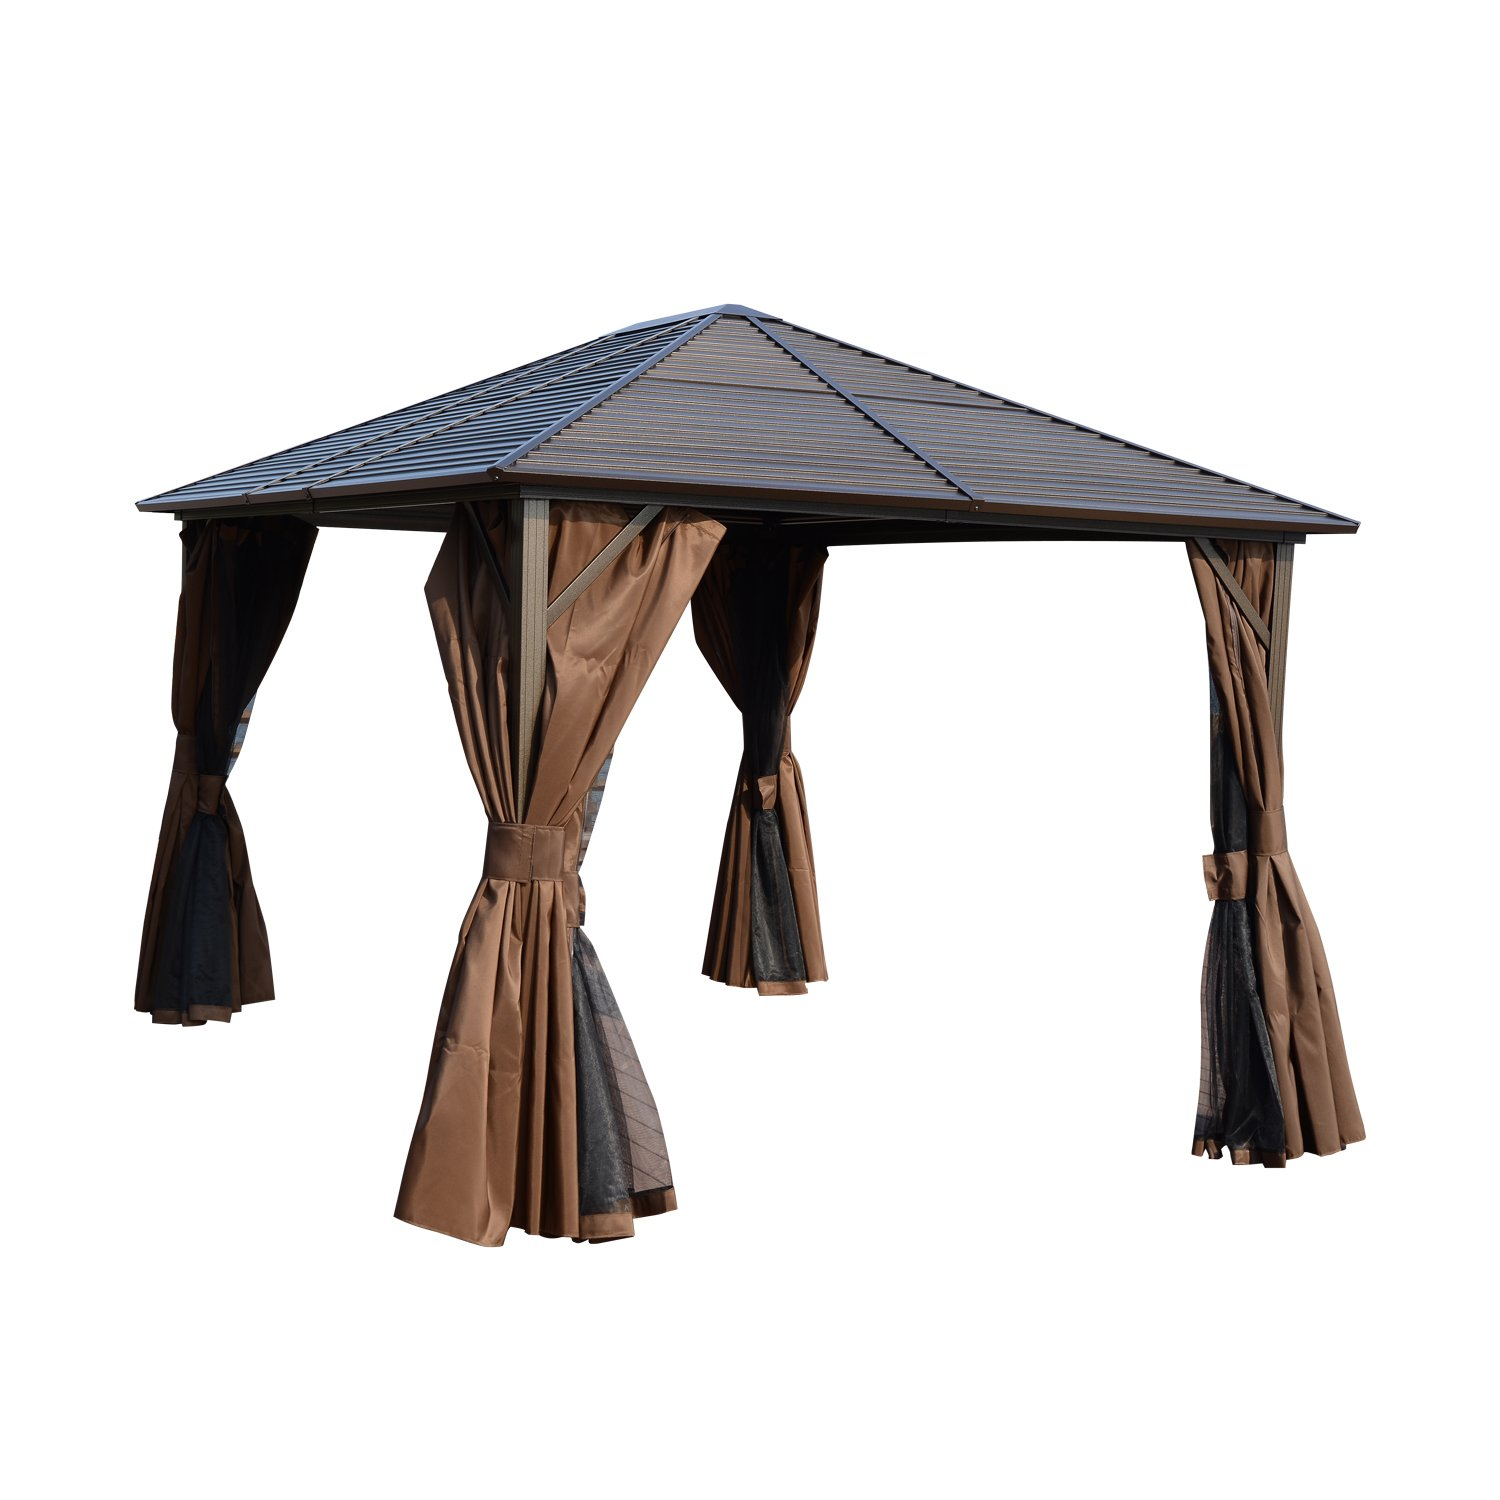 Outsunny 12x10ft Deluxe Steel Hardtop Patio Gazebo Garden Sun Shelter Aluminum Frame Heavy Duty Outdoor Pavilion with Curtains and Netting